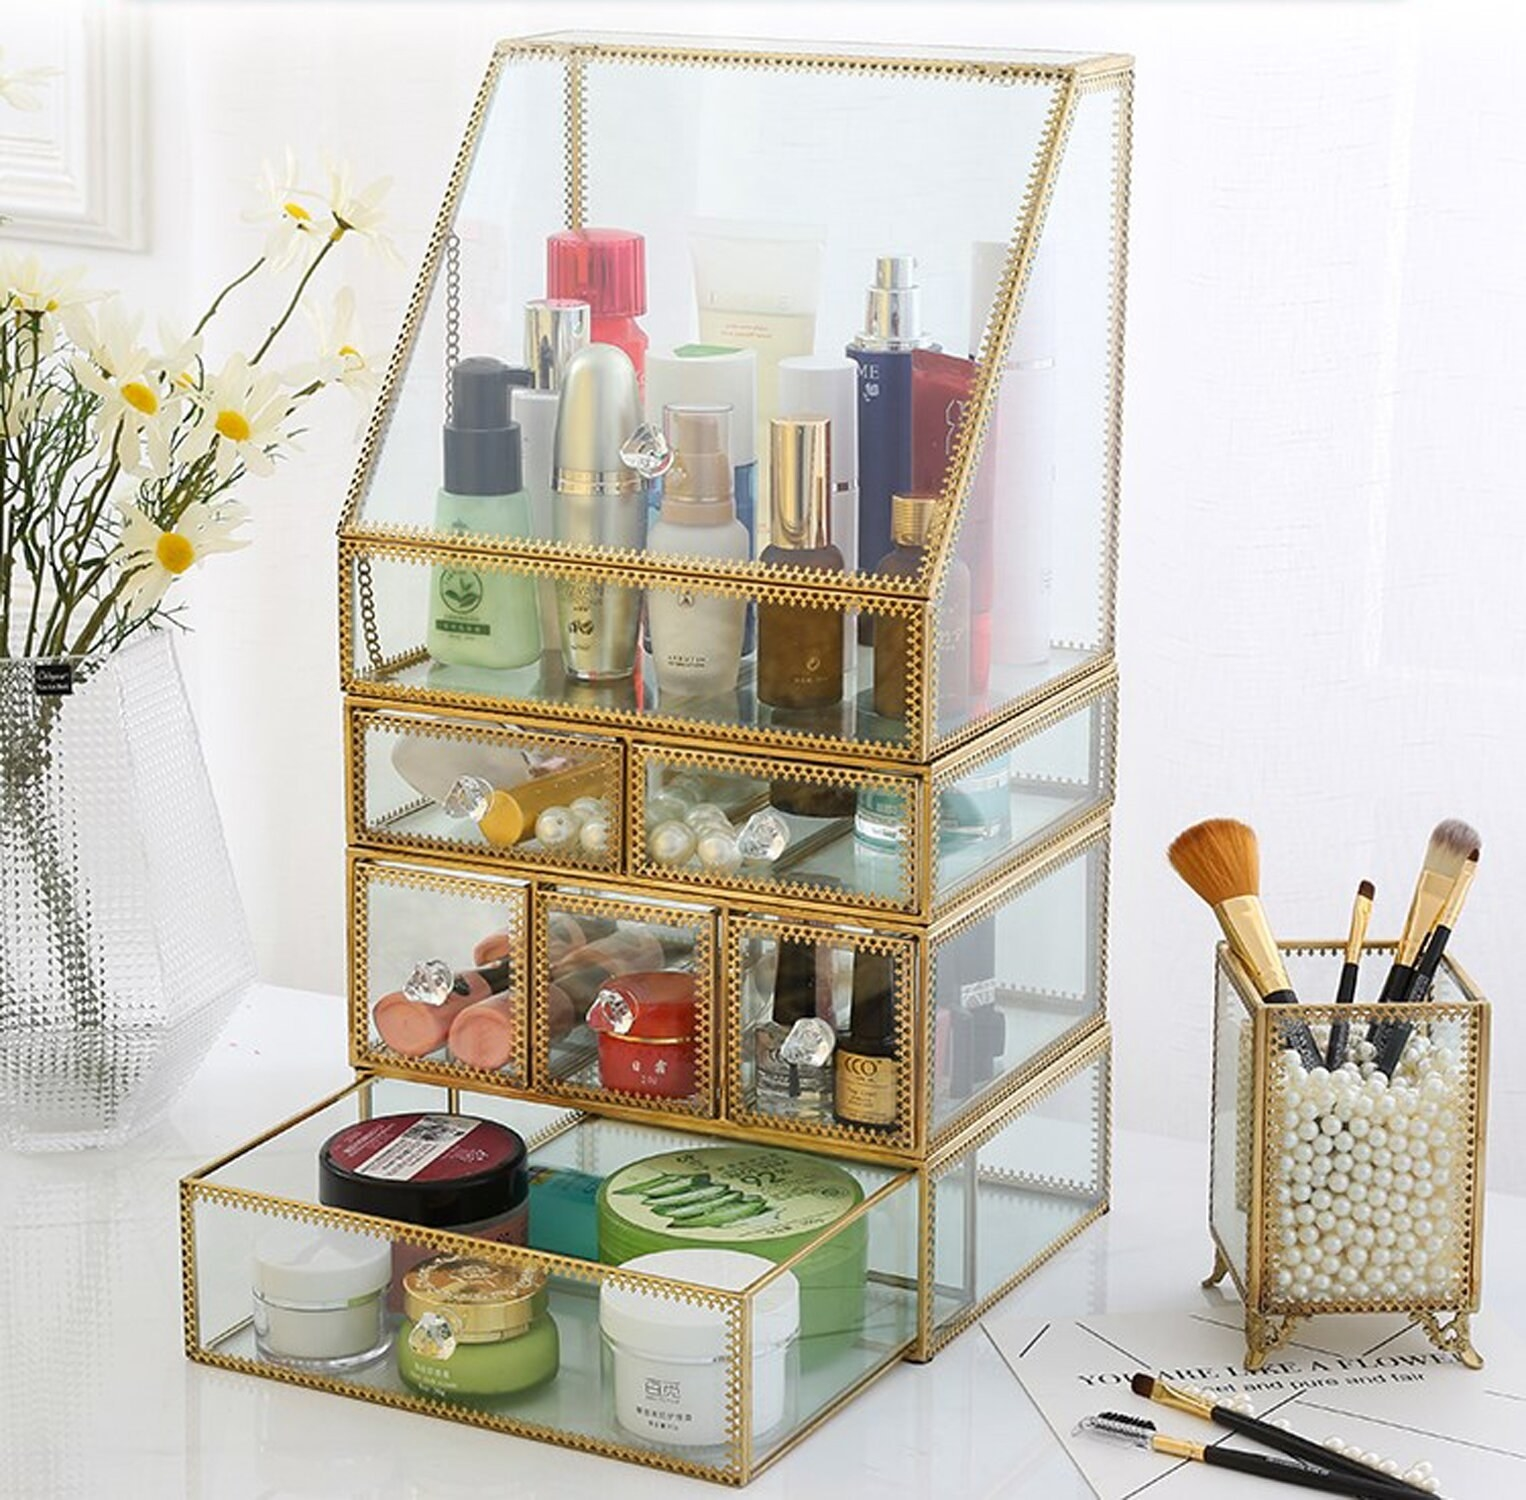 A glamorous makeup organizer that's got several tiers and drawers with makeup and brushes inside and out